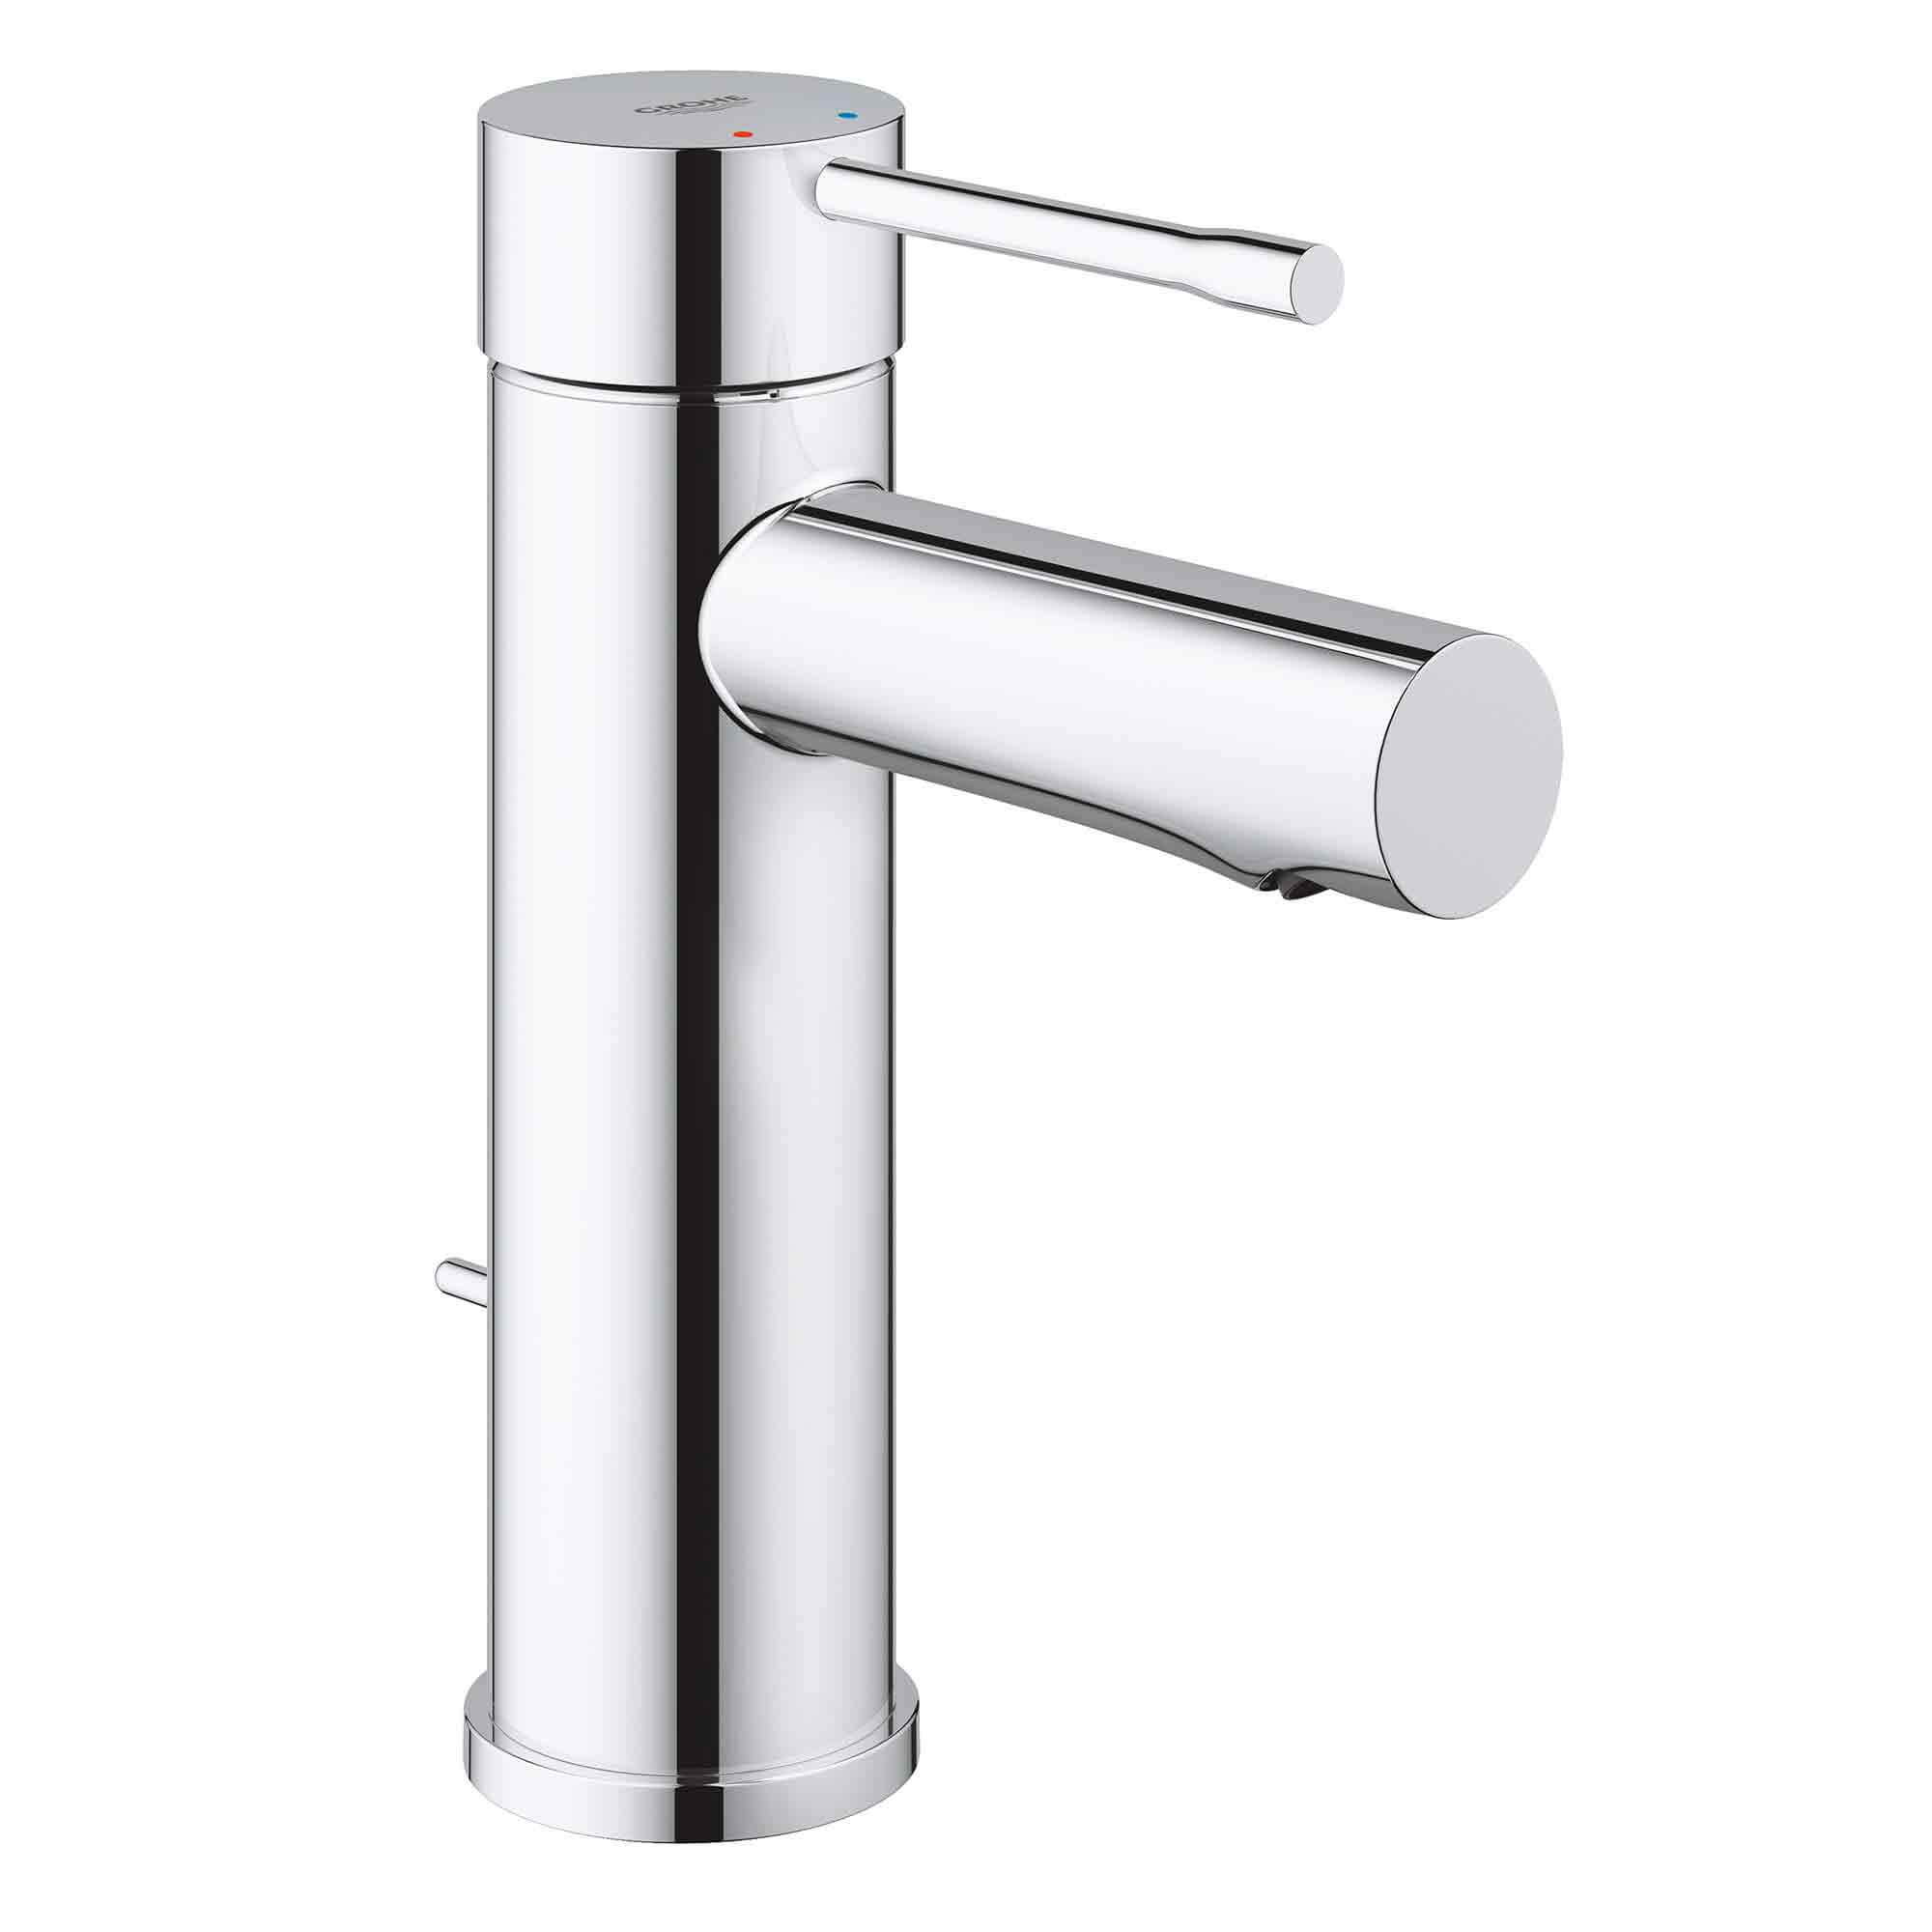 Different Types of Bathtub Faucets